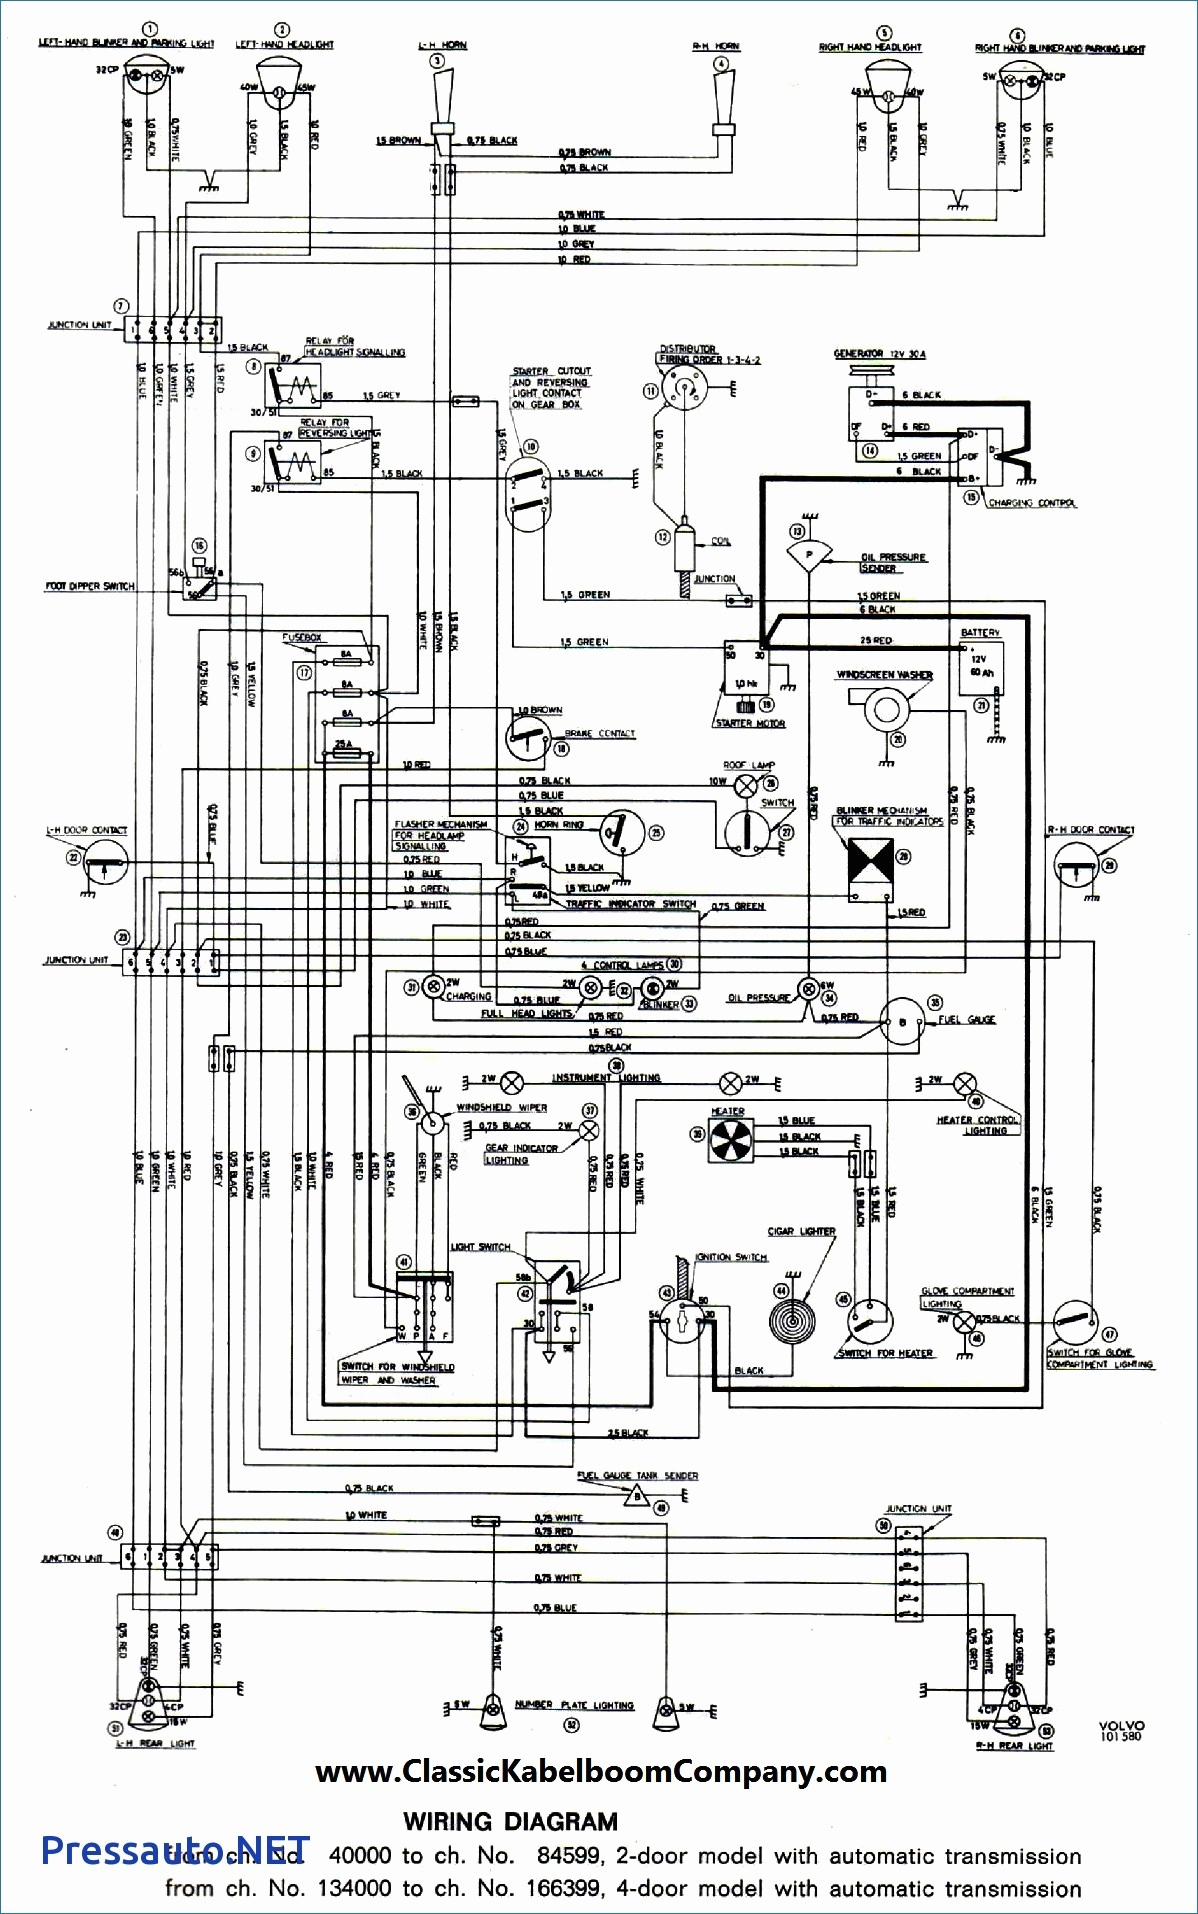 cutler hammer automatic transfer switch wiring diagram Download-Full Size of Wiring Diagram Transfer Switch Wiring Diagram Elegant Luxury Cutler Hammer Sv9000 Wiring 5-r